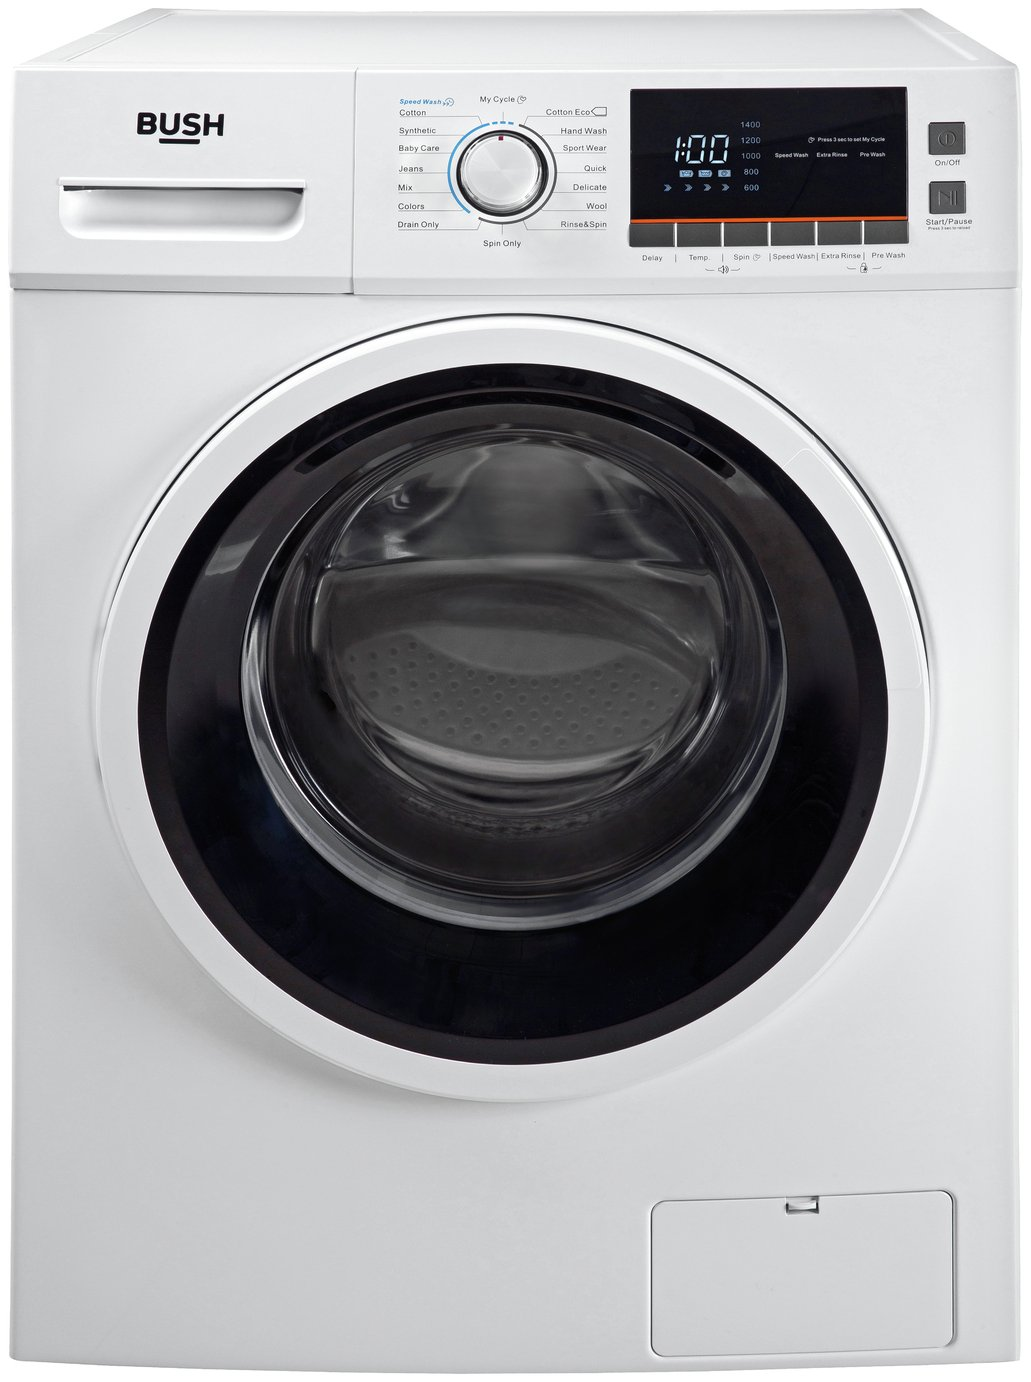 Bush WMNBX814W 8KG 1400 Spin Washing Machine - White Best Price, Cheapest Prices